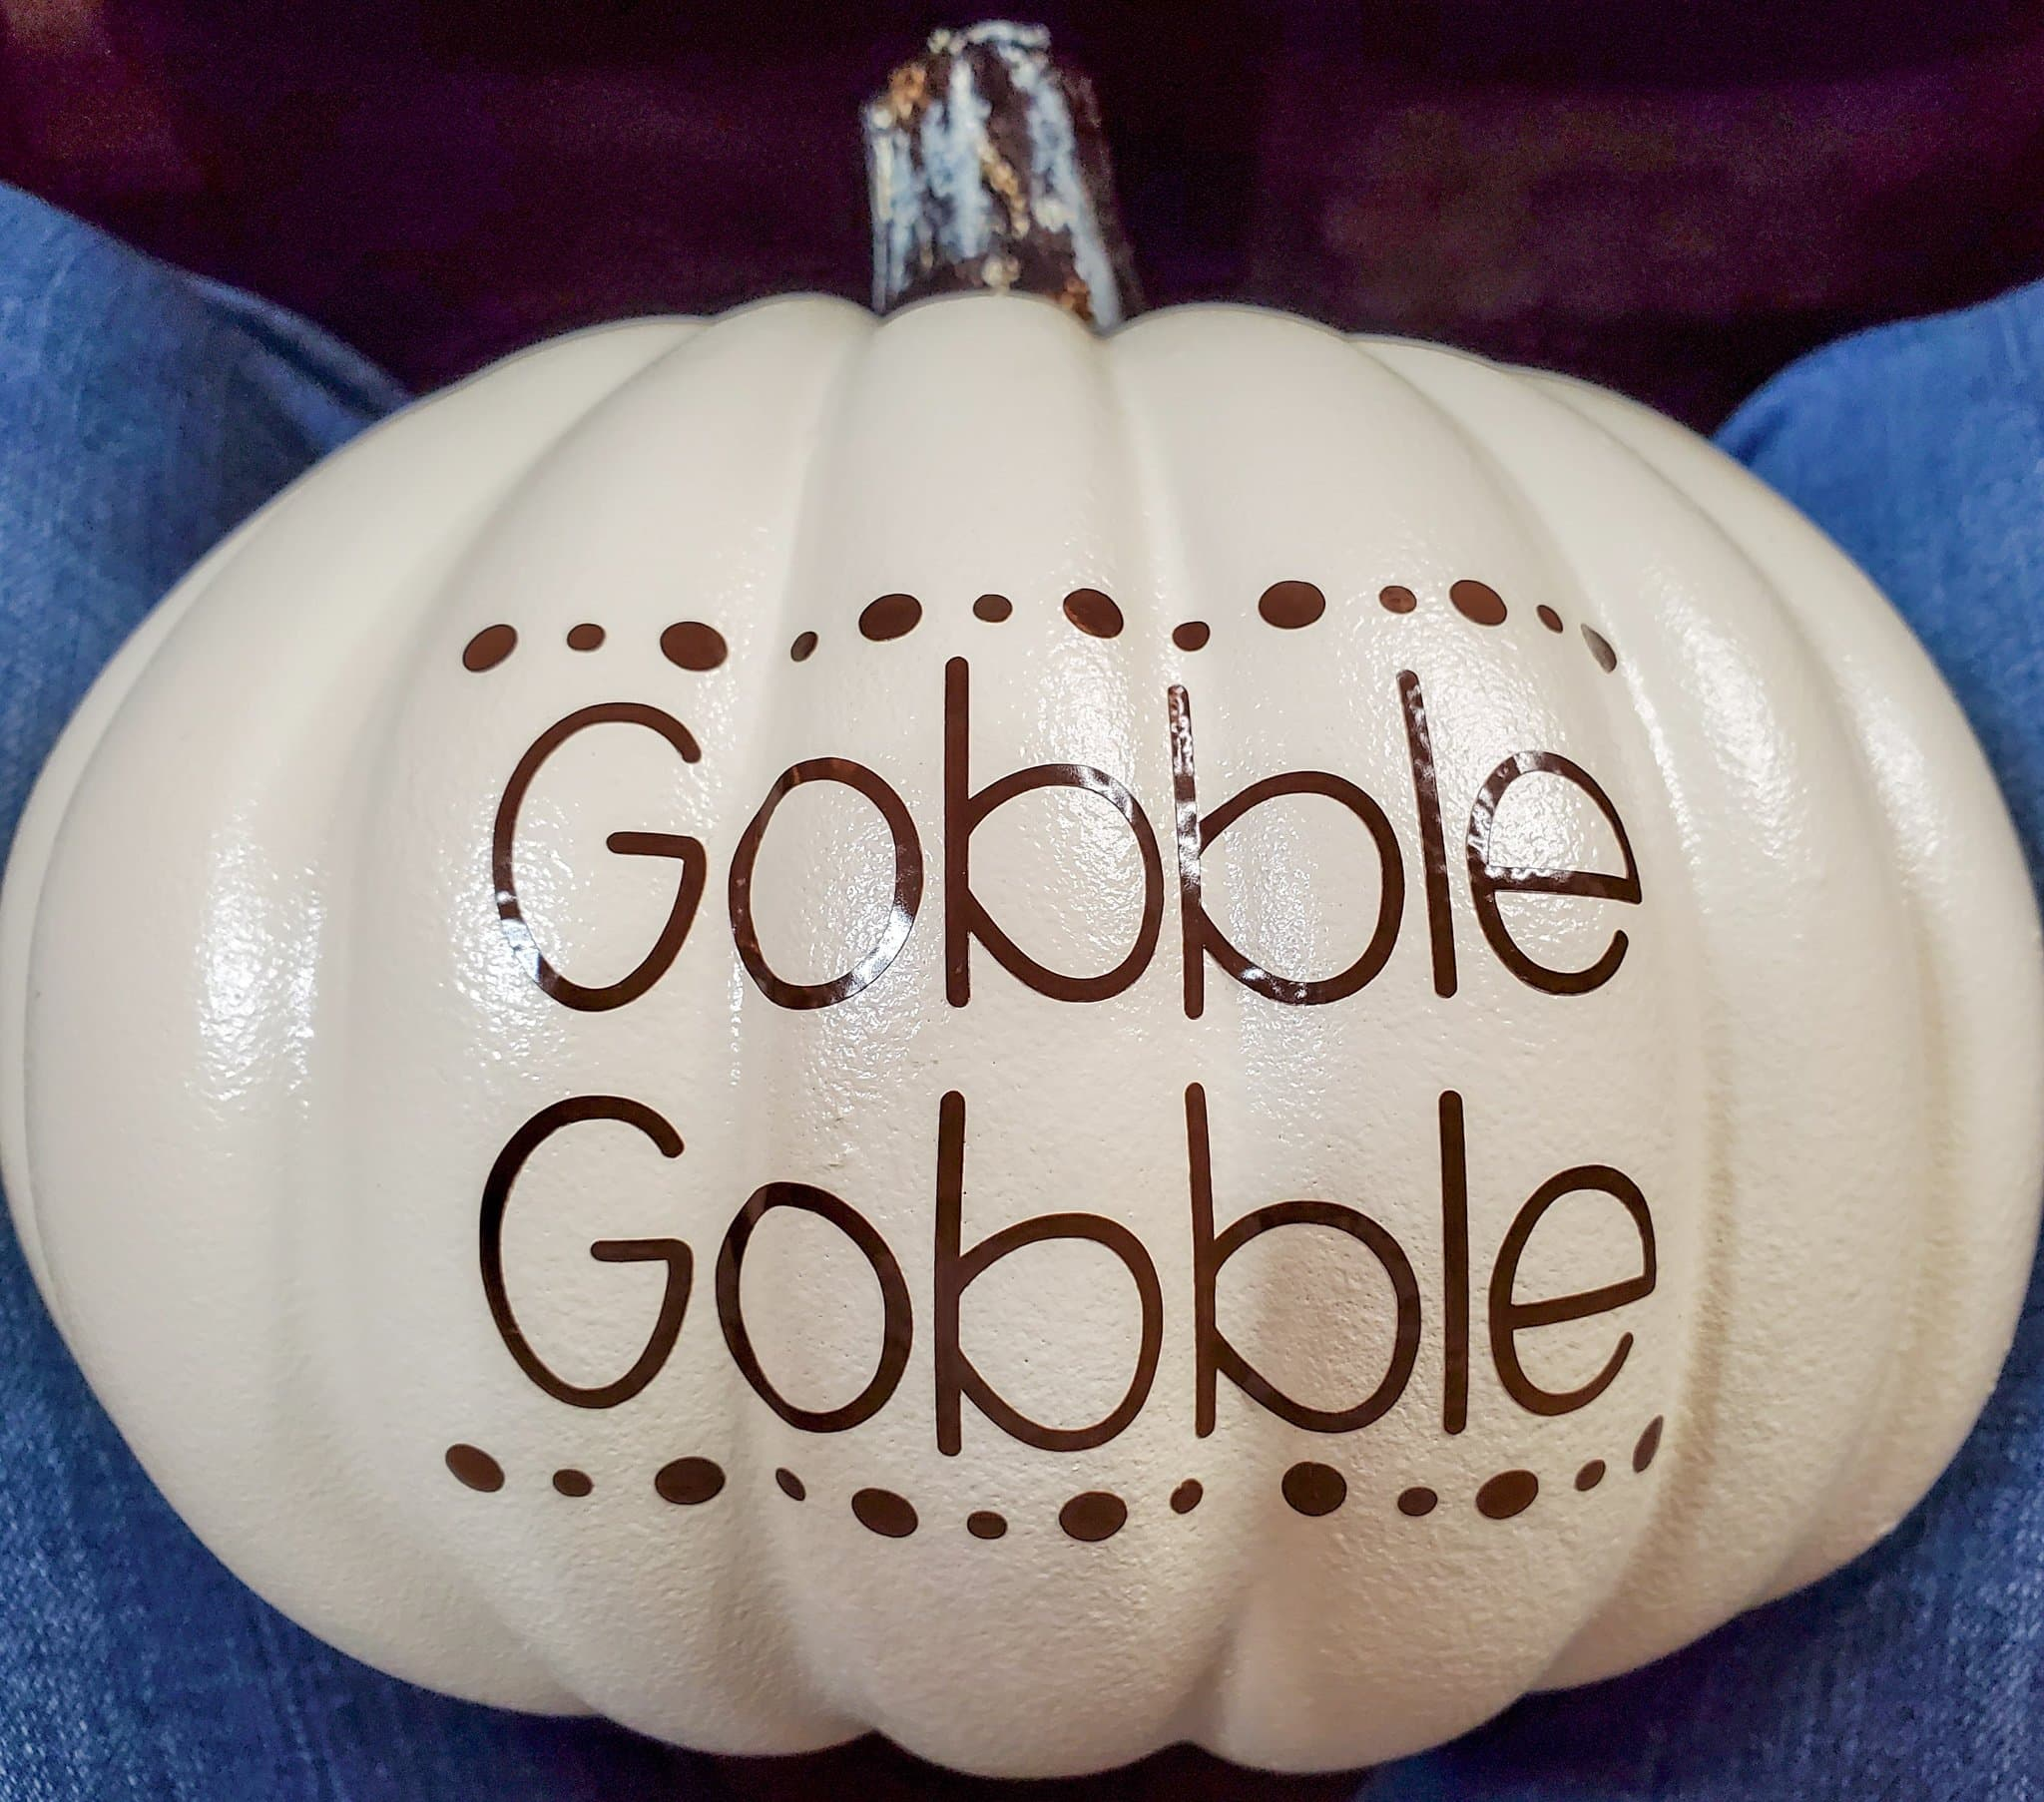 rows of brown dots applied to pumpkin above and below Gobble Gobble